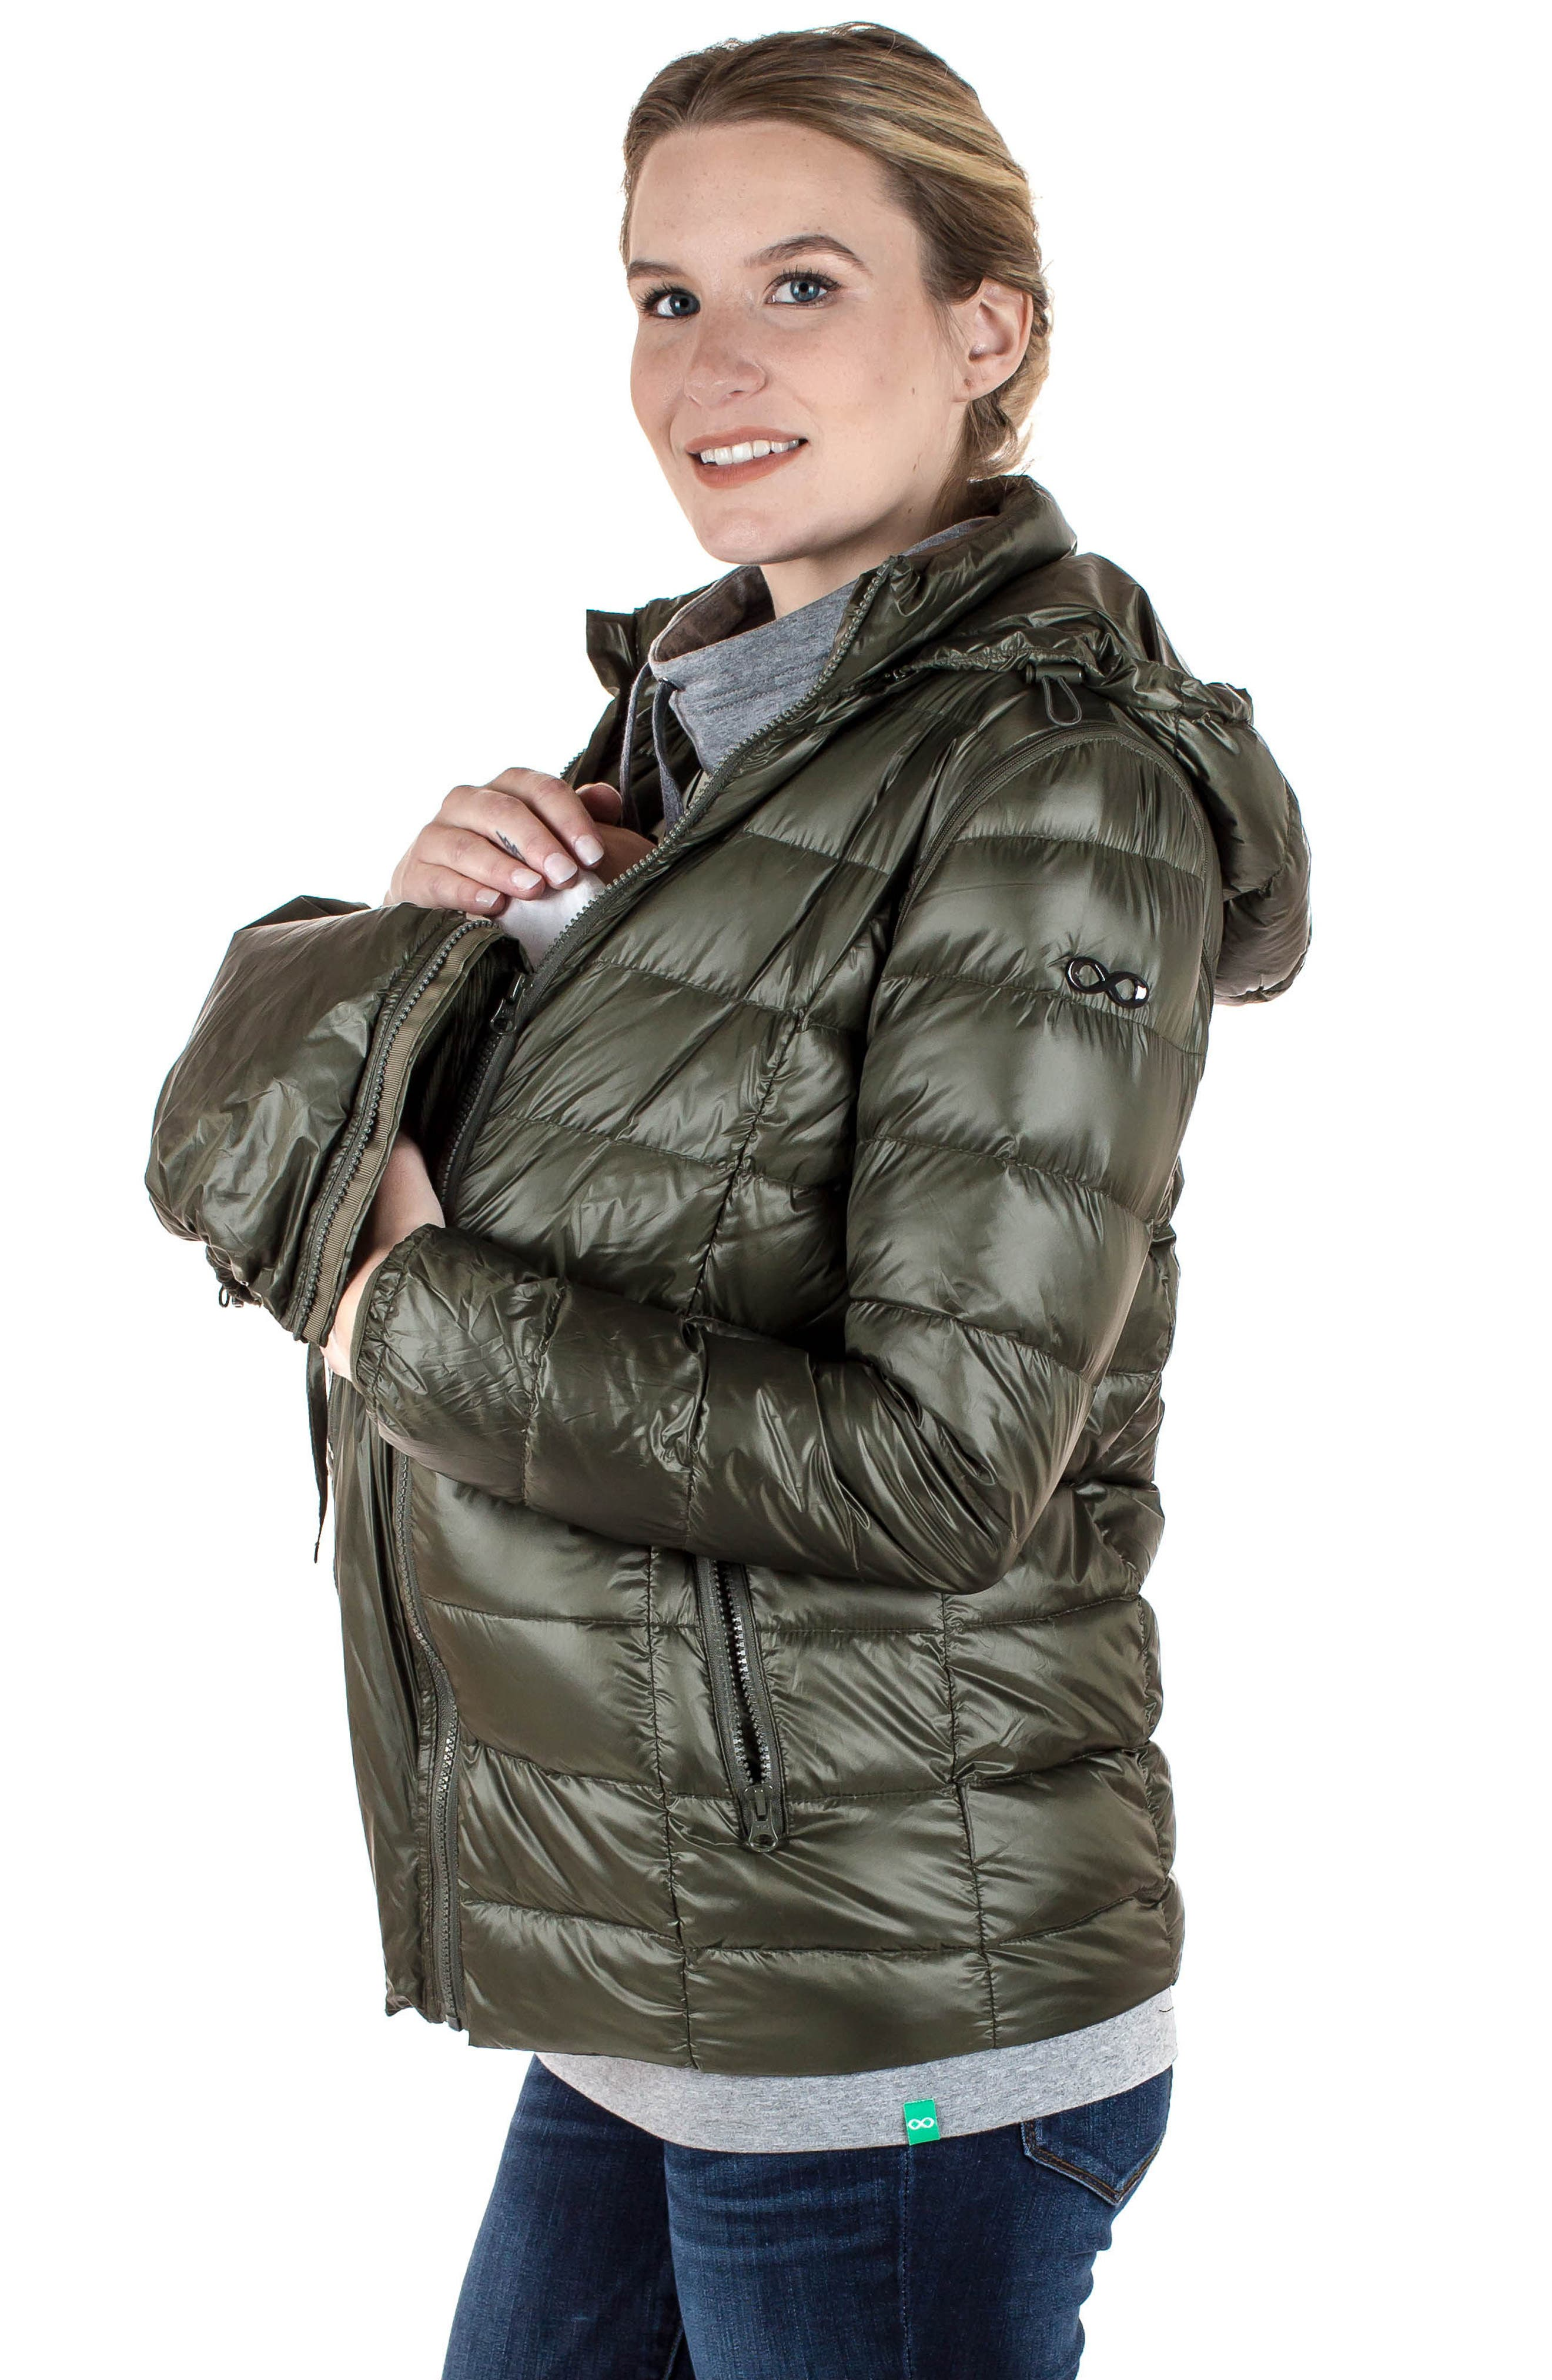 Lightweight Puffer Convertible 3-in-1 Maternity Jacket,                             Alternate thumbnail 7, color,                             KHAKI GREEN